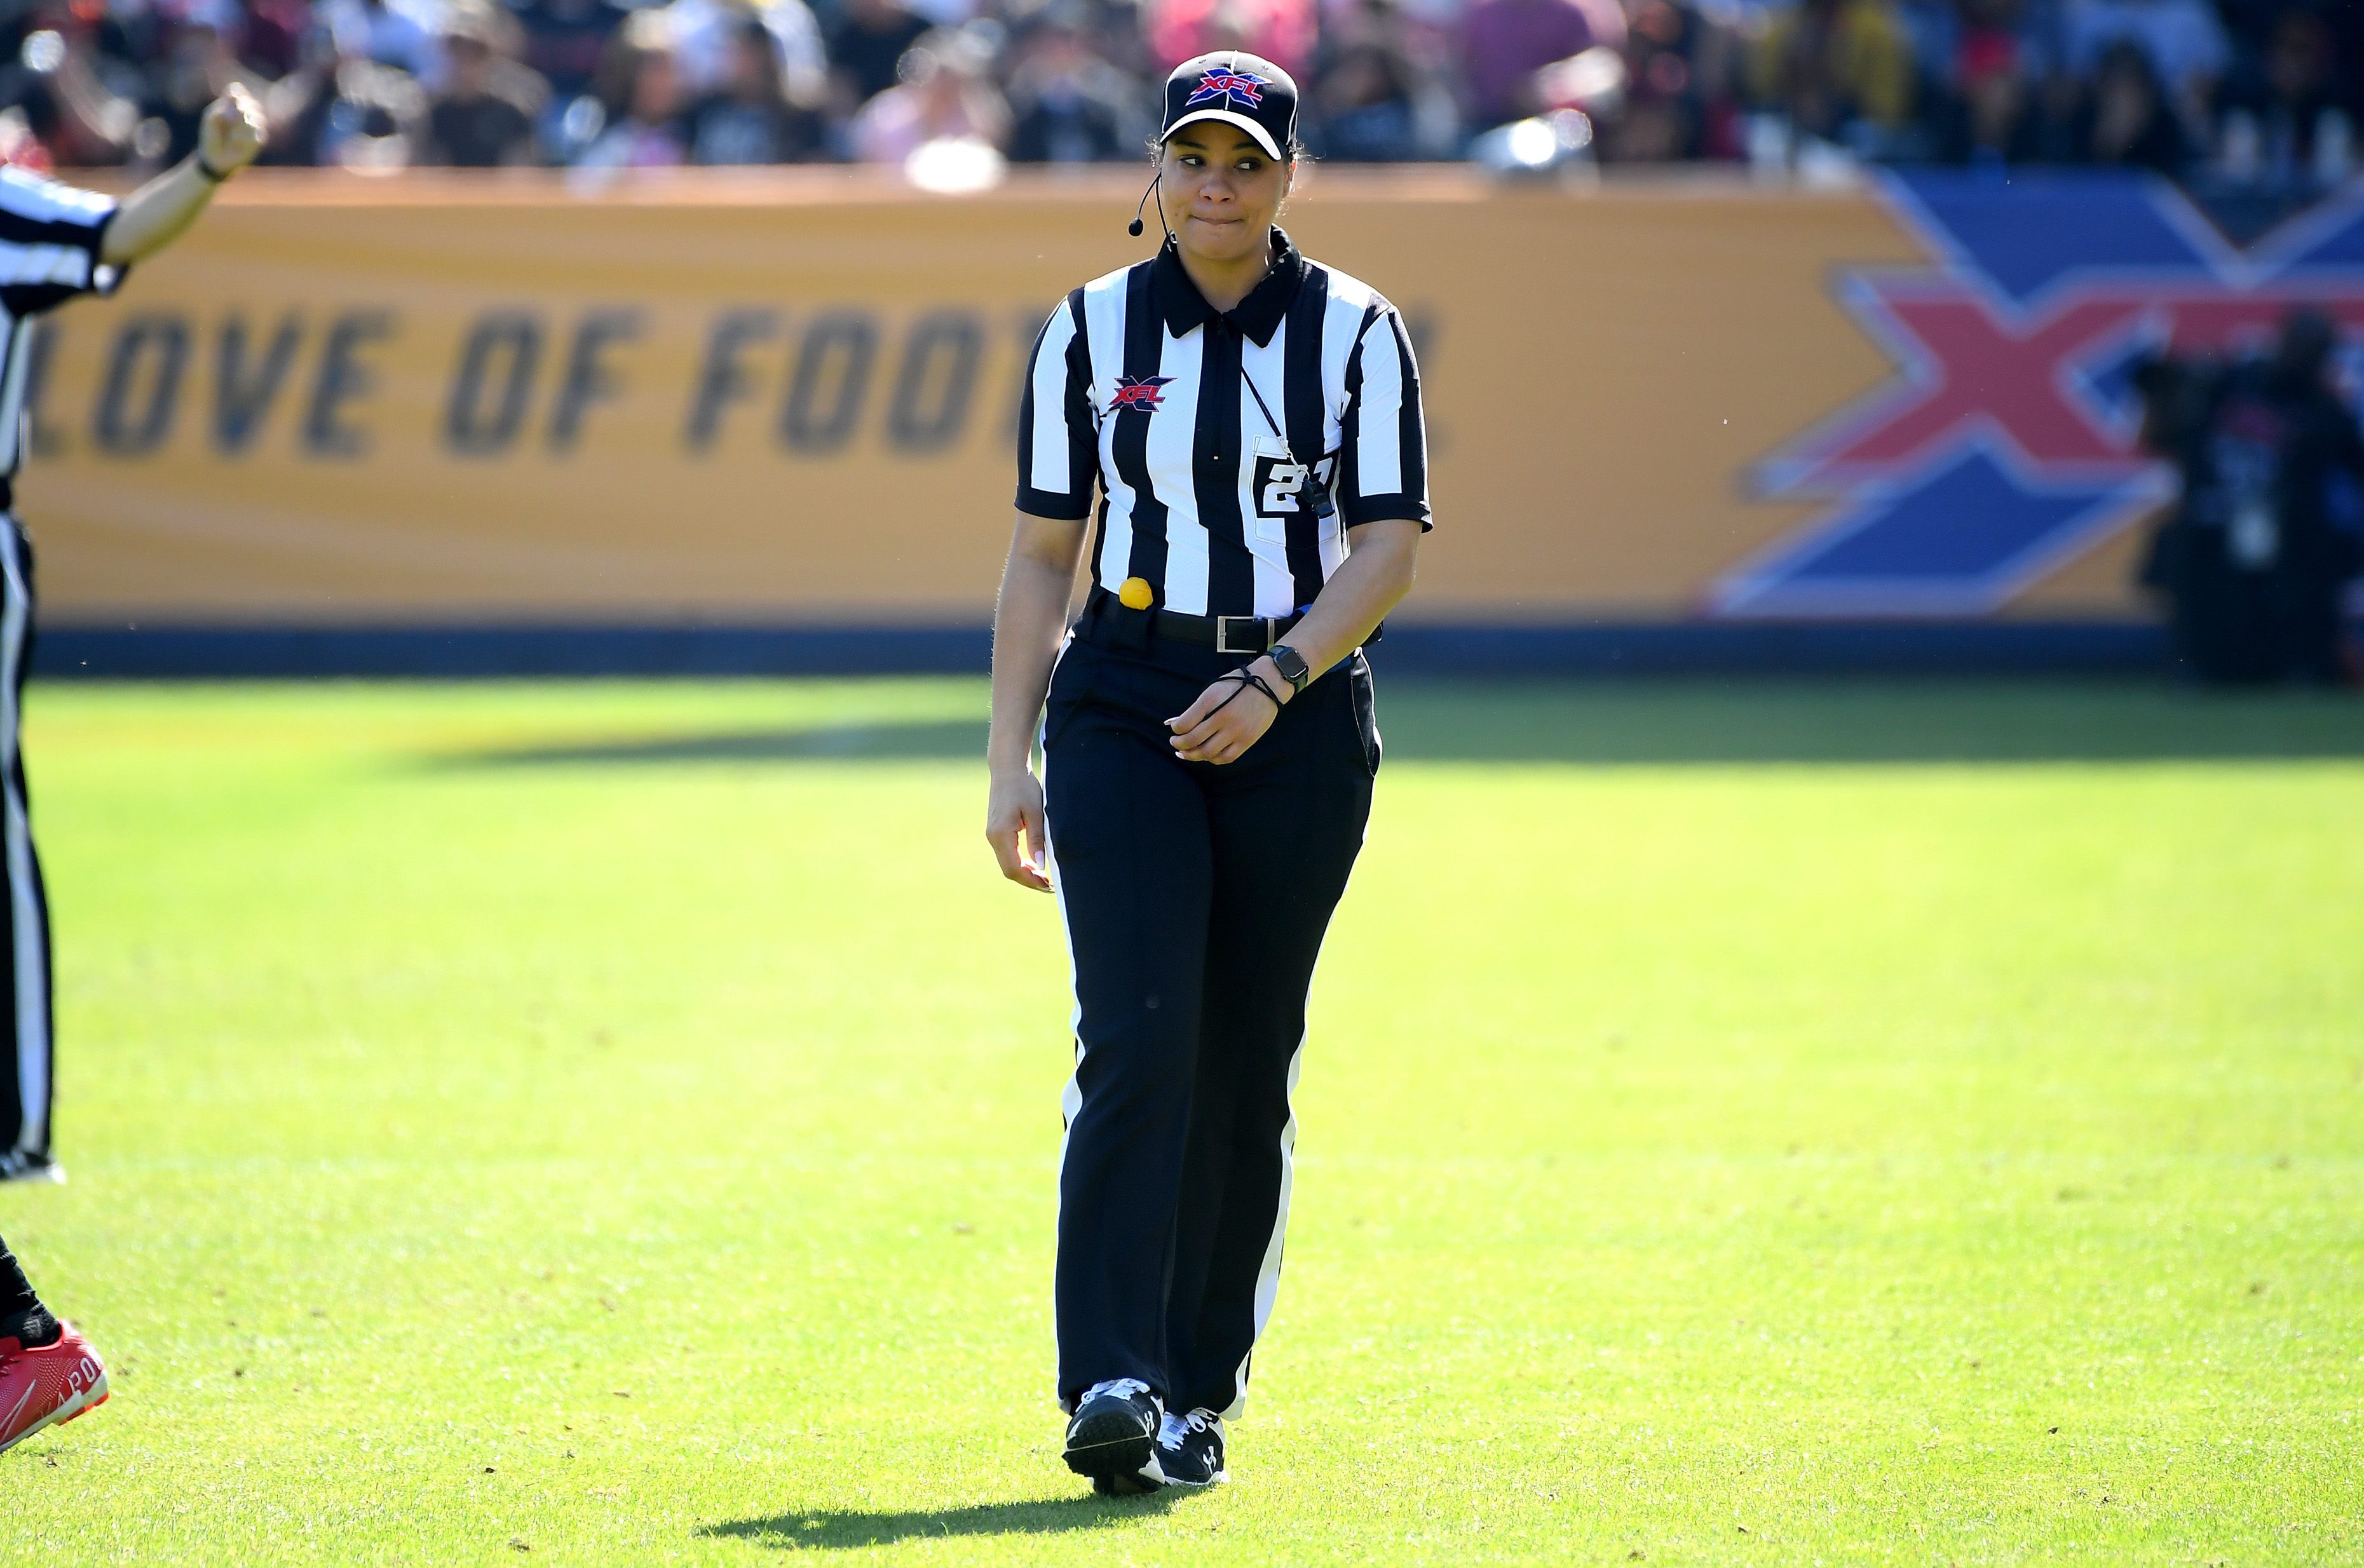 Maia Chaka will be the first Black female official in the NFL next year.